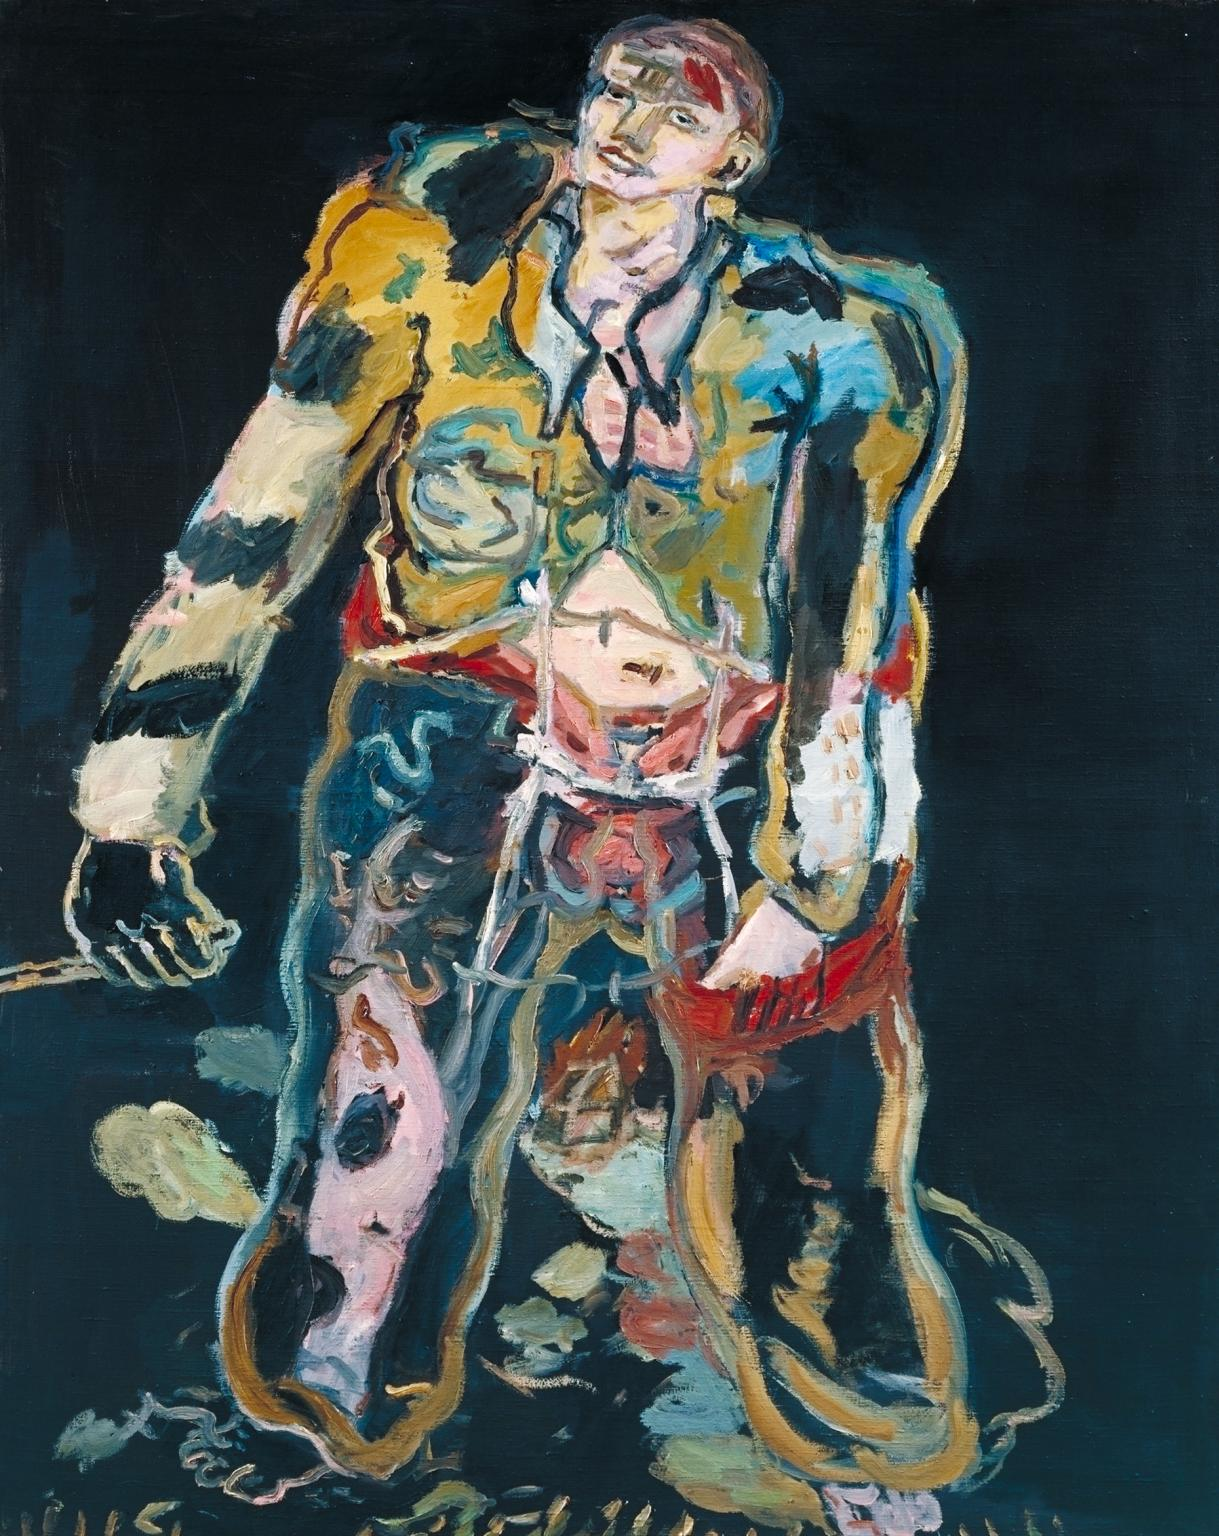 Georg Baselitz. Rebel, 1965